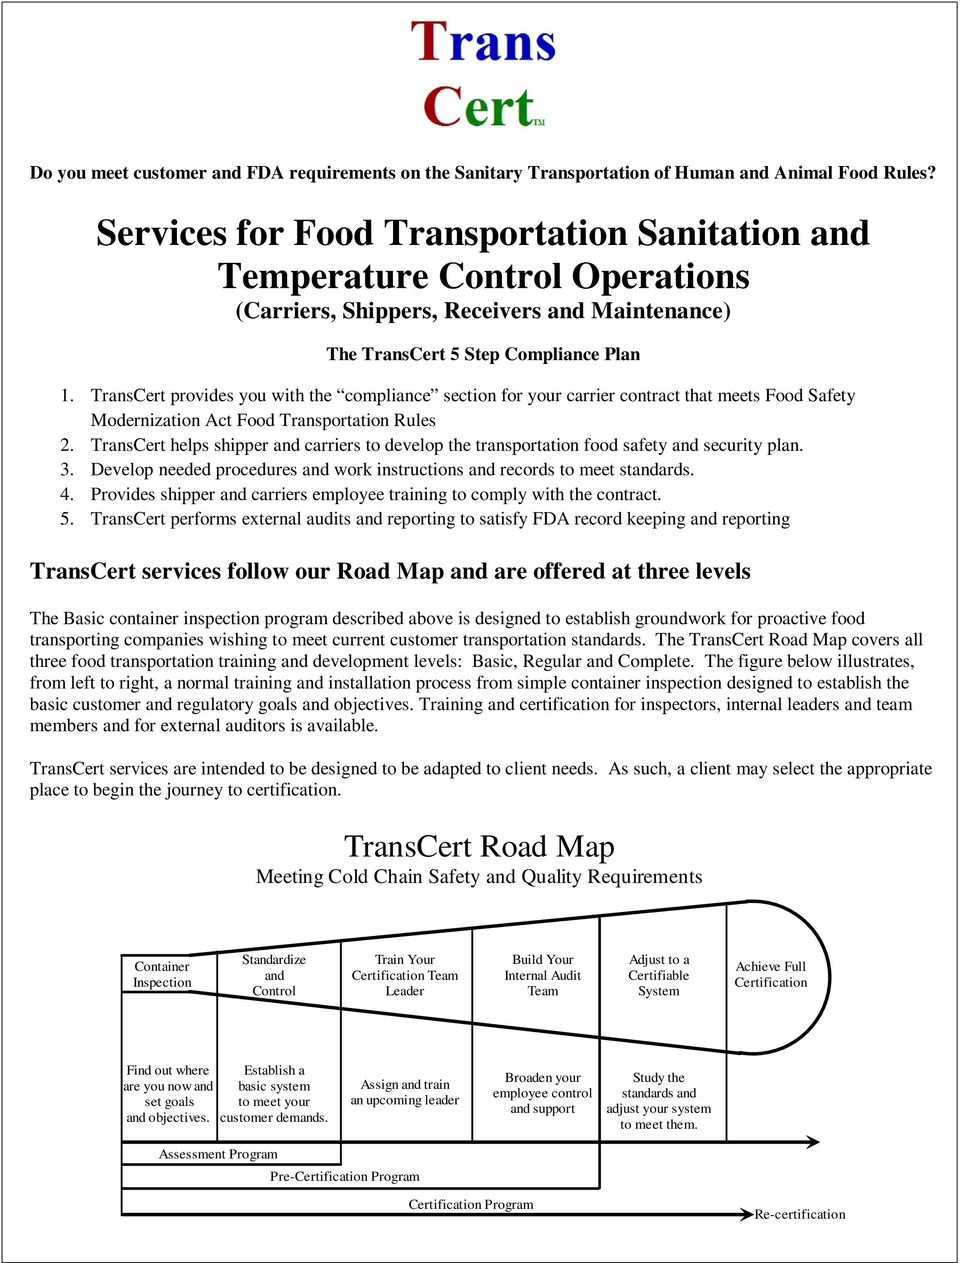 TransCert provides you with the compliance section for your carrier contract that meets Food Safety Modernization Act Food Transportation Rules 2.